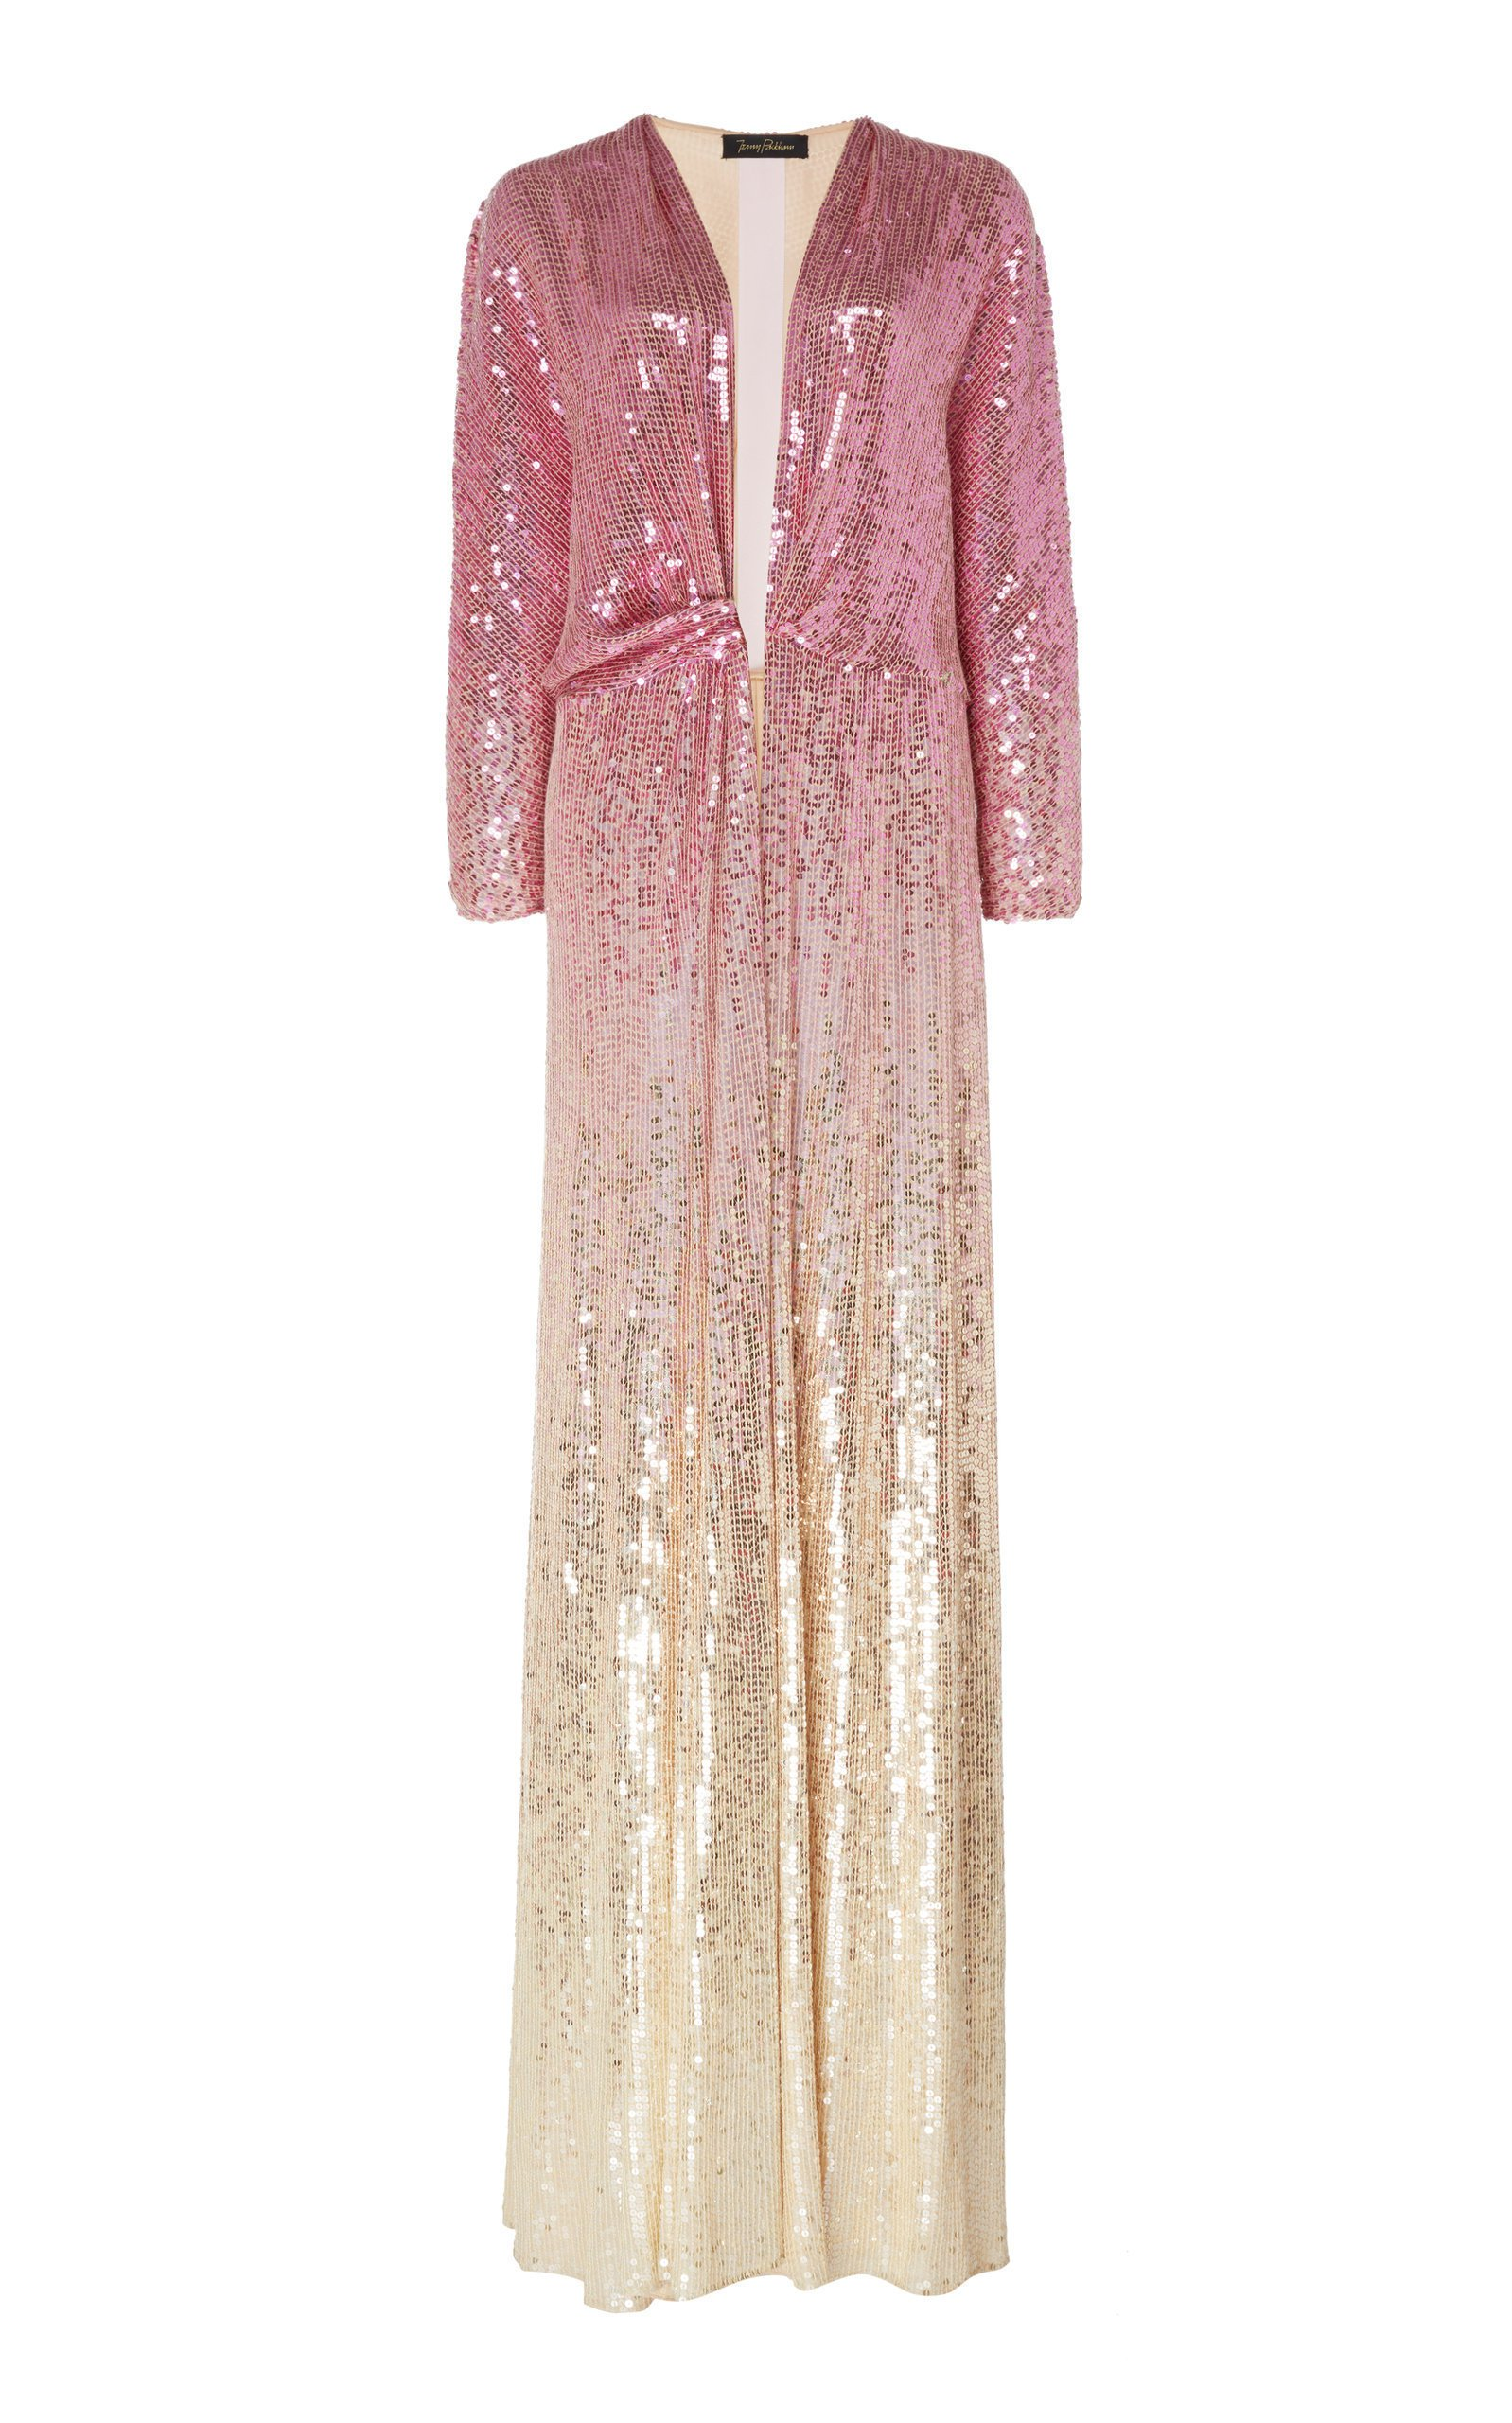 Jenny Packham Gina Ombre Sequined Chiffon Dress